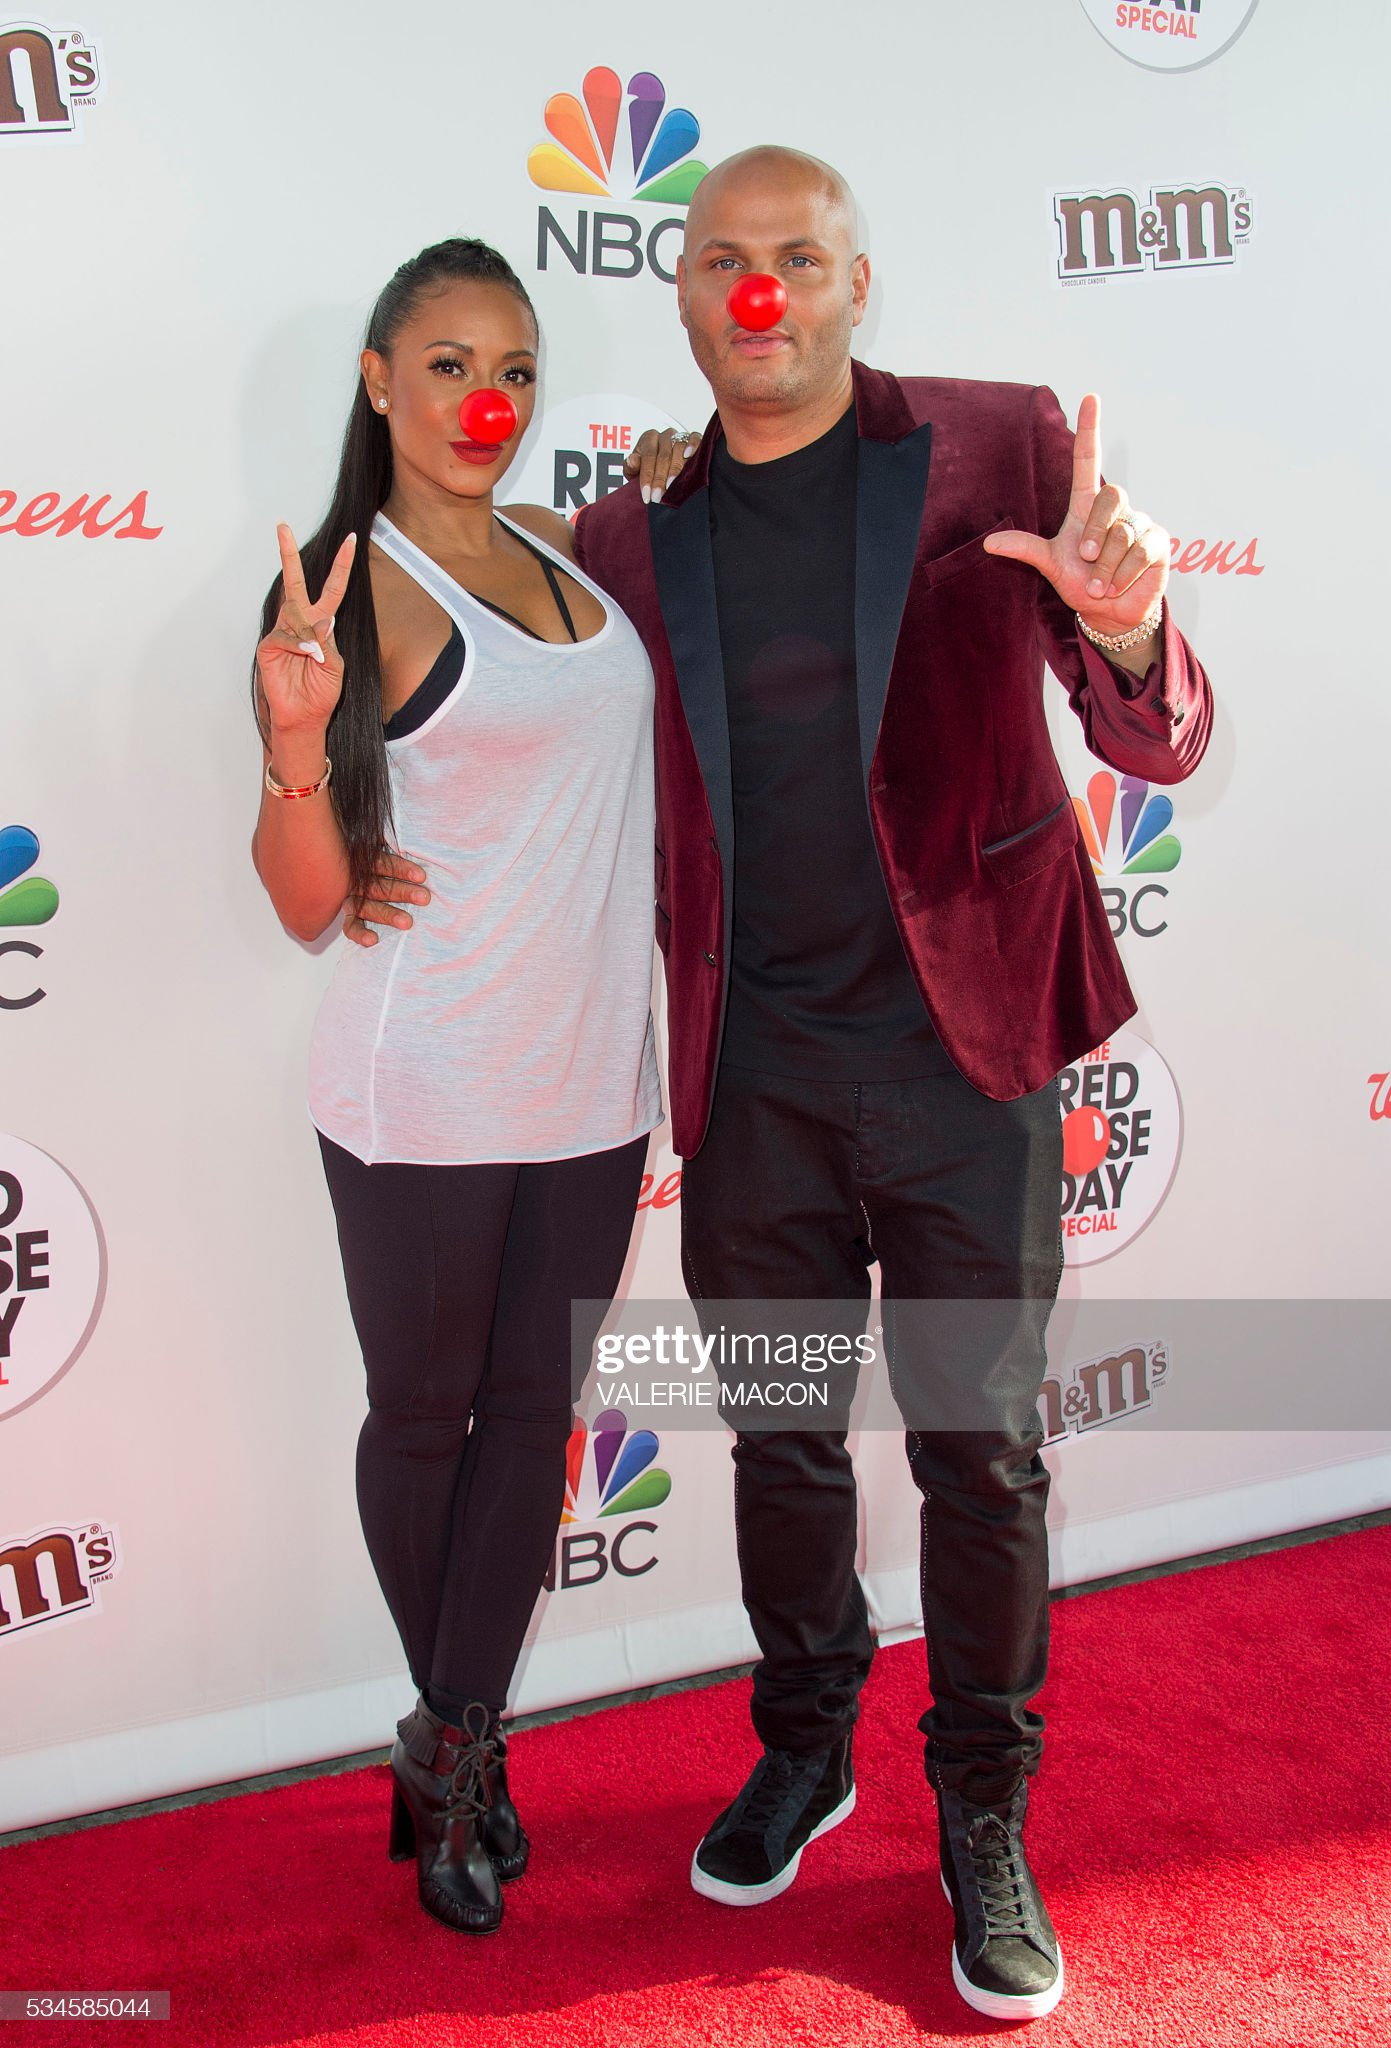 ¿Cuánto mide Stephen Belafonte? - Altura - Real height Actressrecording-artist-mel-b-and-producer-stephen-belafonte-attend-picture-id534585044?s=2048x2048